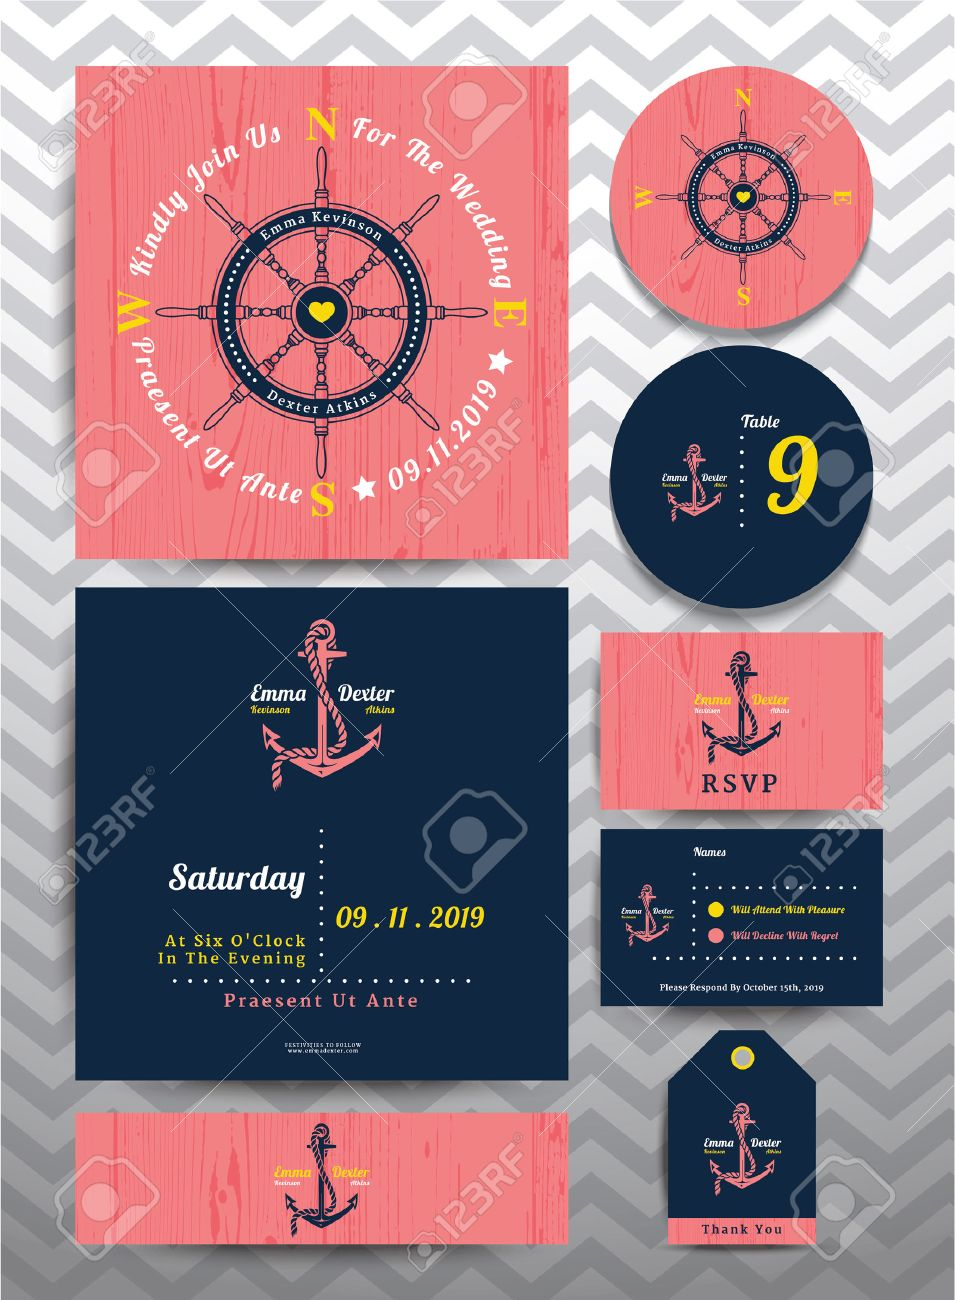 Nautical Wedding Invitation And RSVP Card In Anchor Rope Design